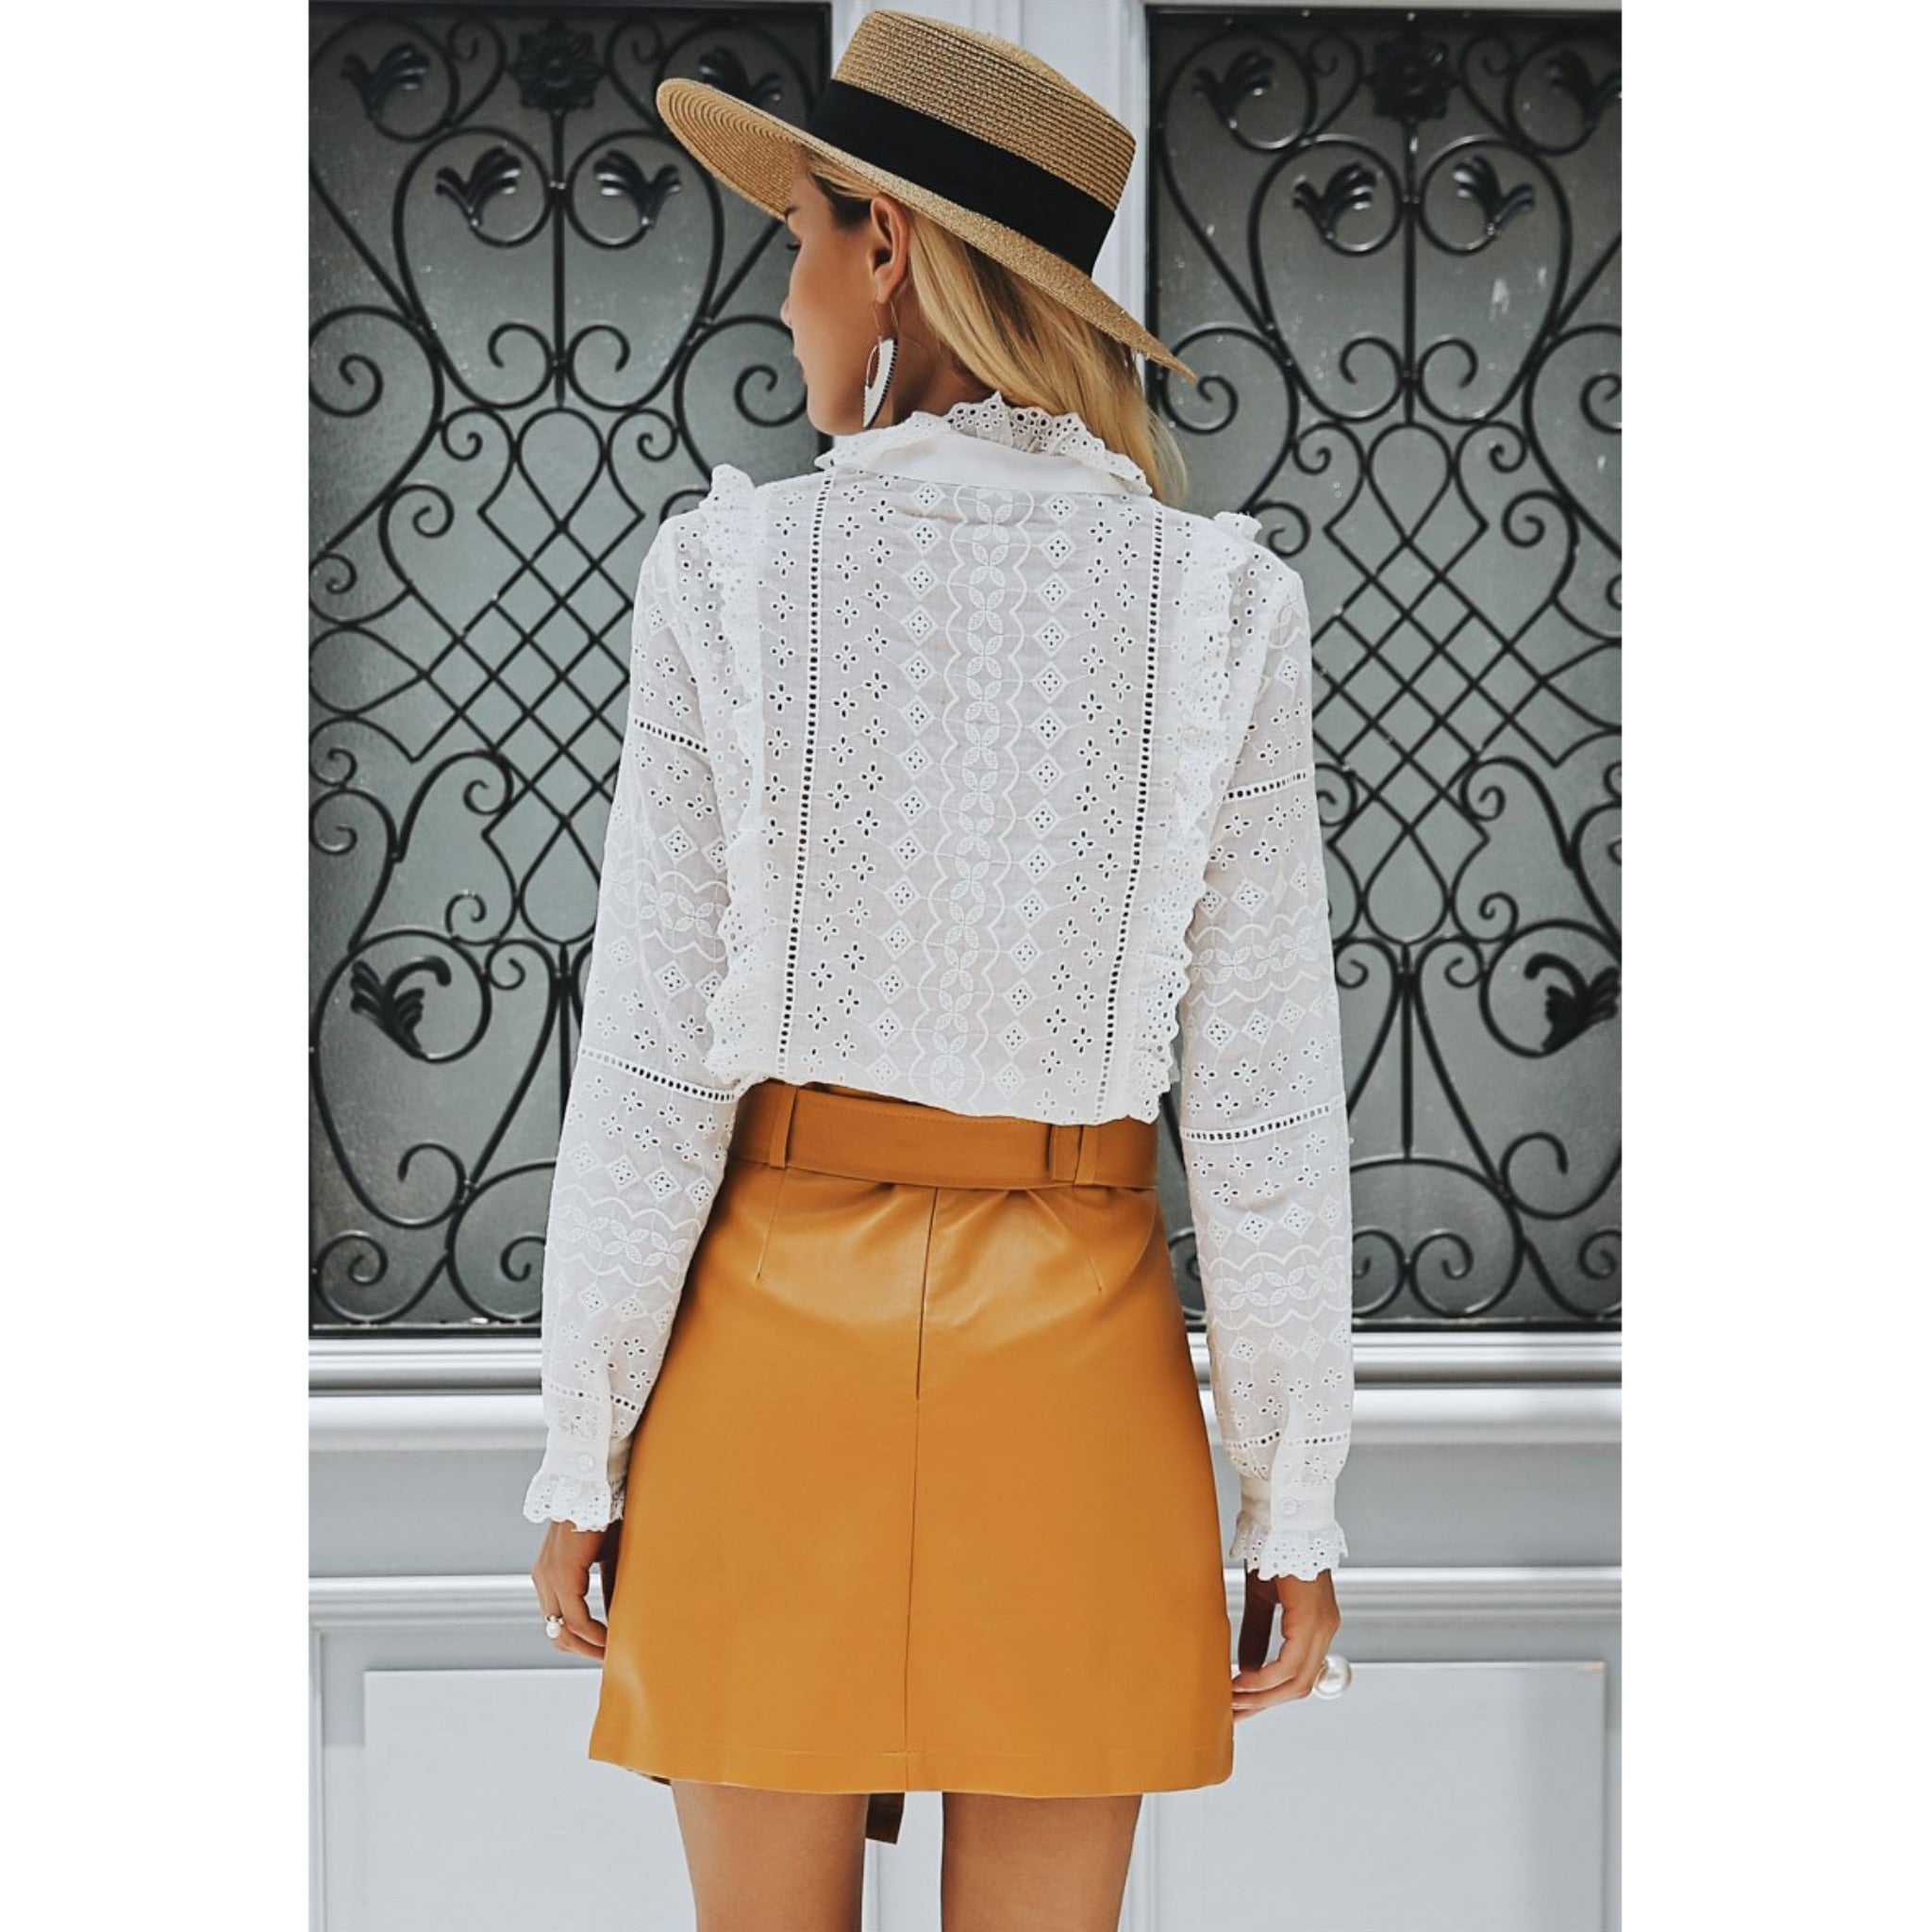 Yellow Faux Leather mini skirt with belt and high waist. White Blouse and hat